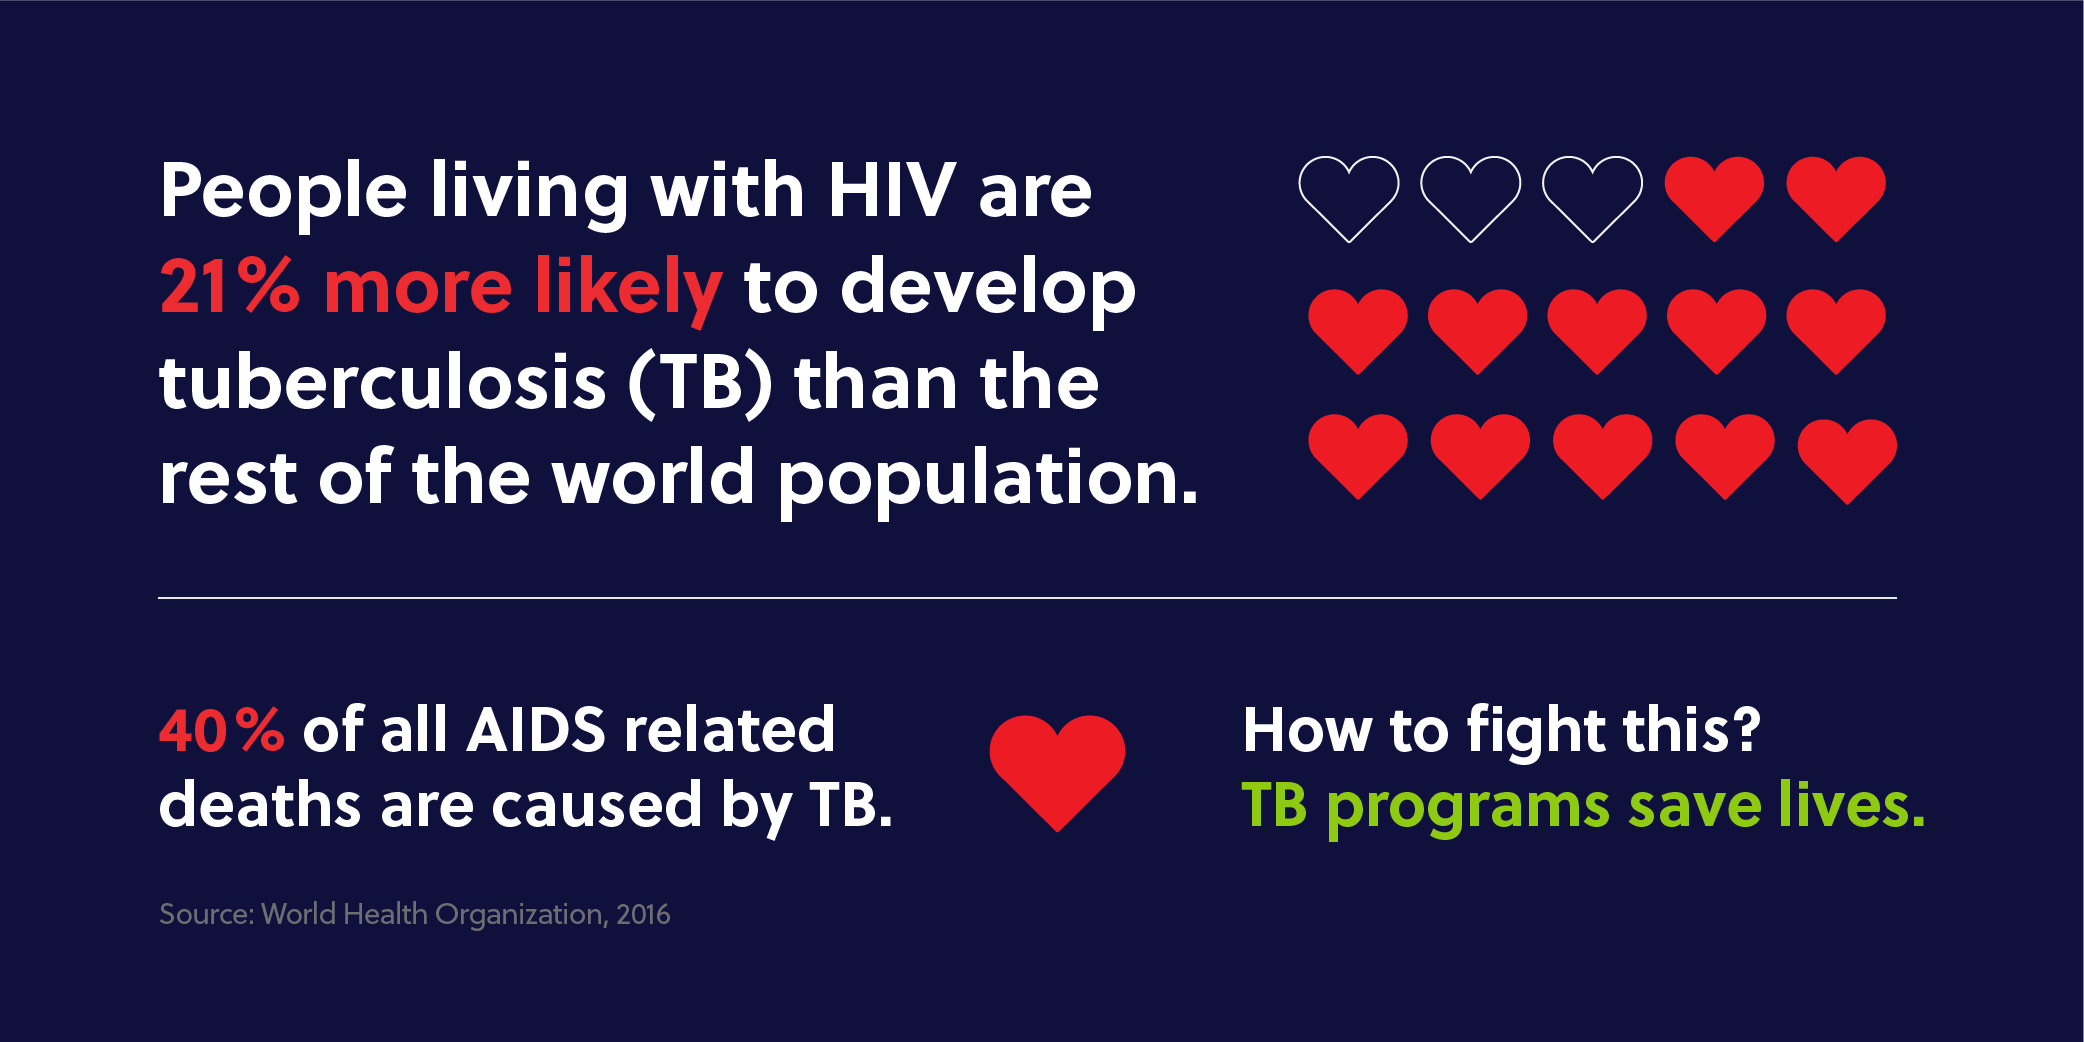 World_AIDS_Day_TB_programs_save_lives